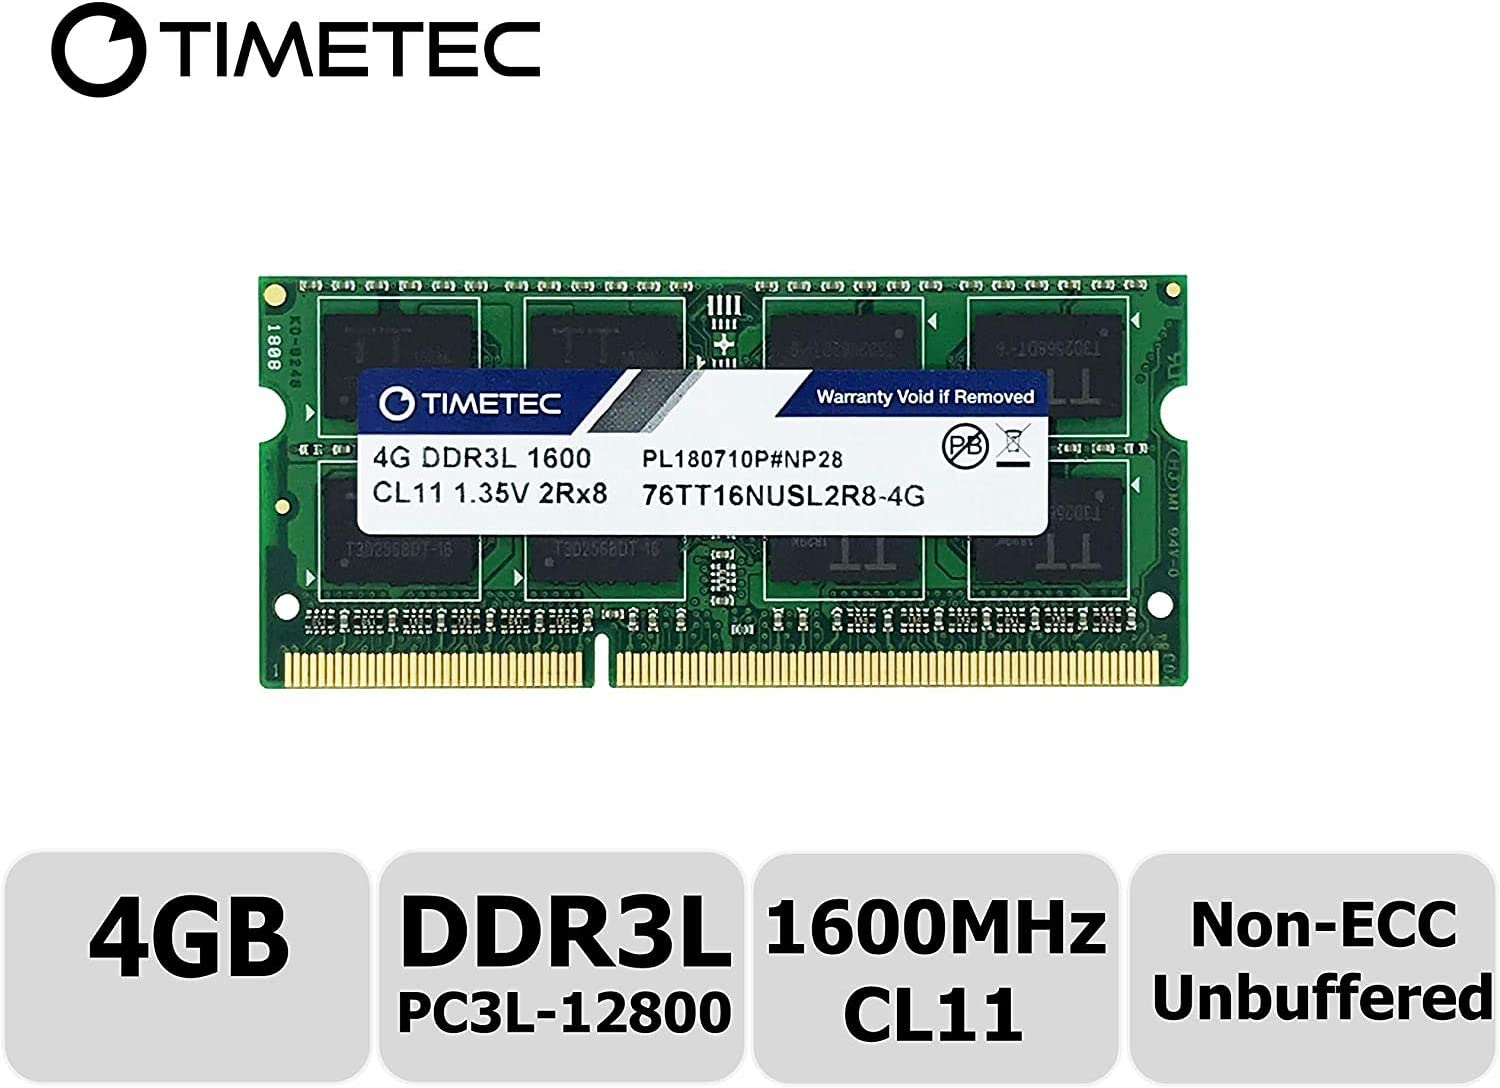 Timetec Hynix IC 4GB DDR3L 1600MHz PC3L-12800 Non ECC Unbuffered 1.35V CL11 2Rx8 Dual Rank 204 Pin SODIMM Laptop Notebook Computer Memory Ram Module Upgrade (Low Density 4GB)